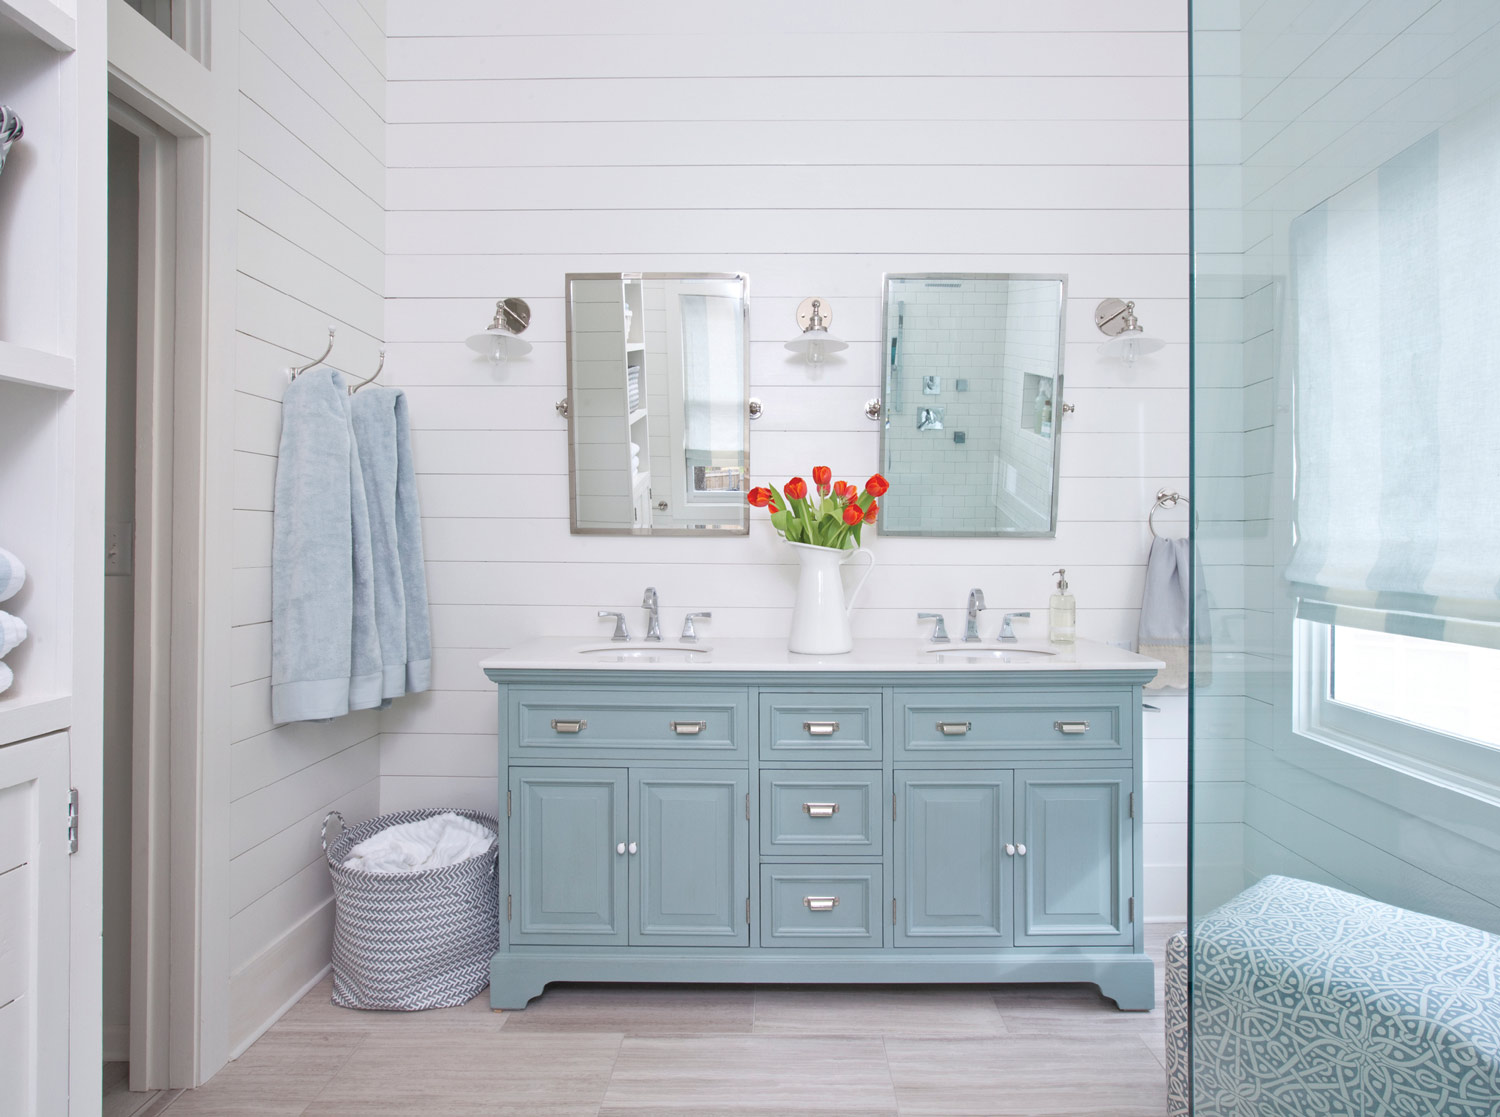 """""""The aqua color on the vanity and barn doors is very serene, while the white walls keep things fresh,"""" says designer Lisa Gabrielson."""